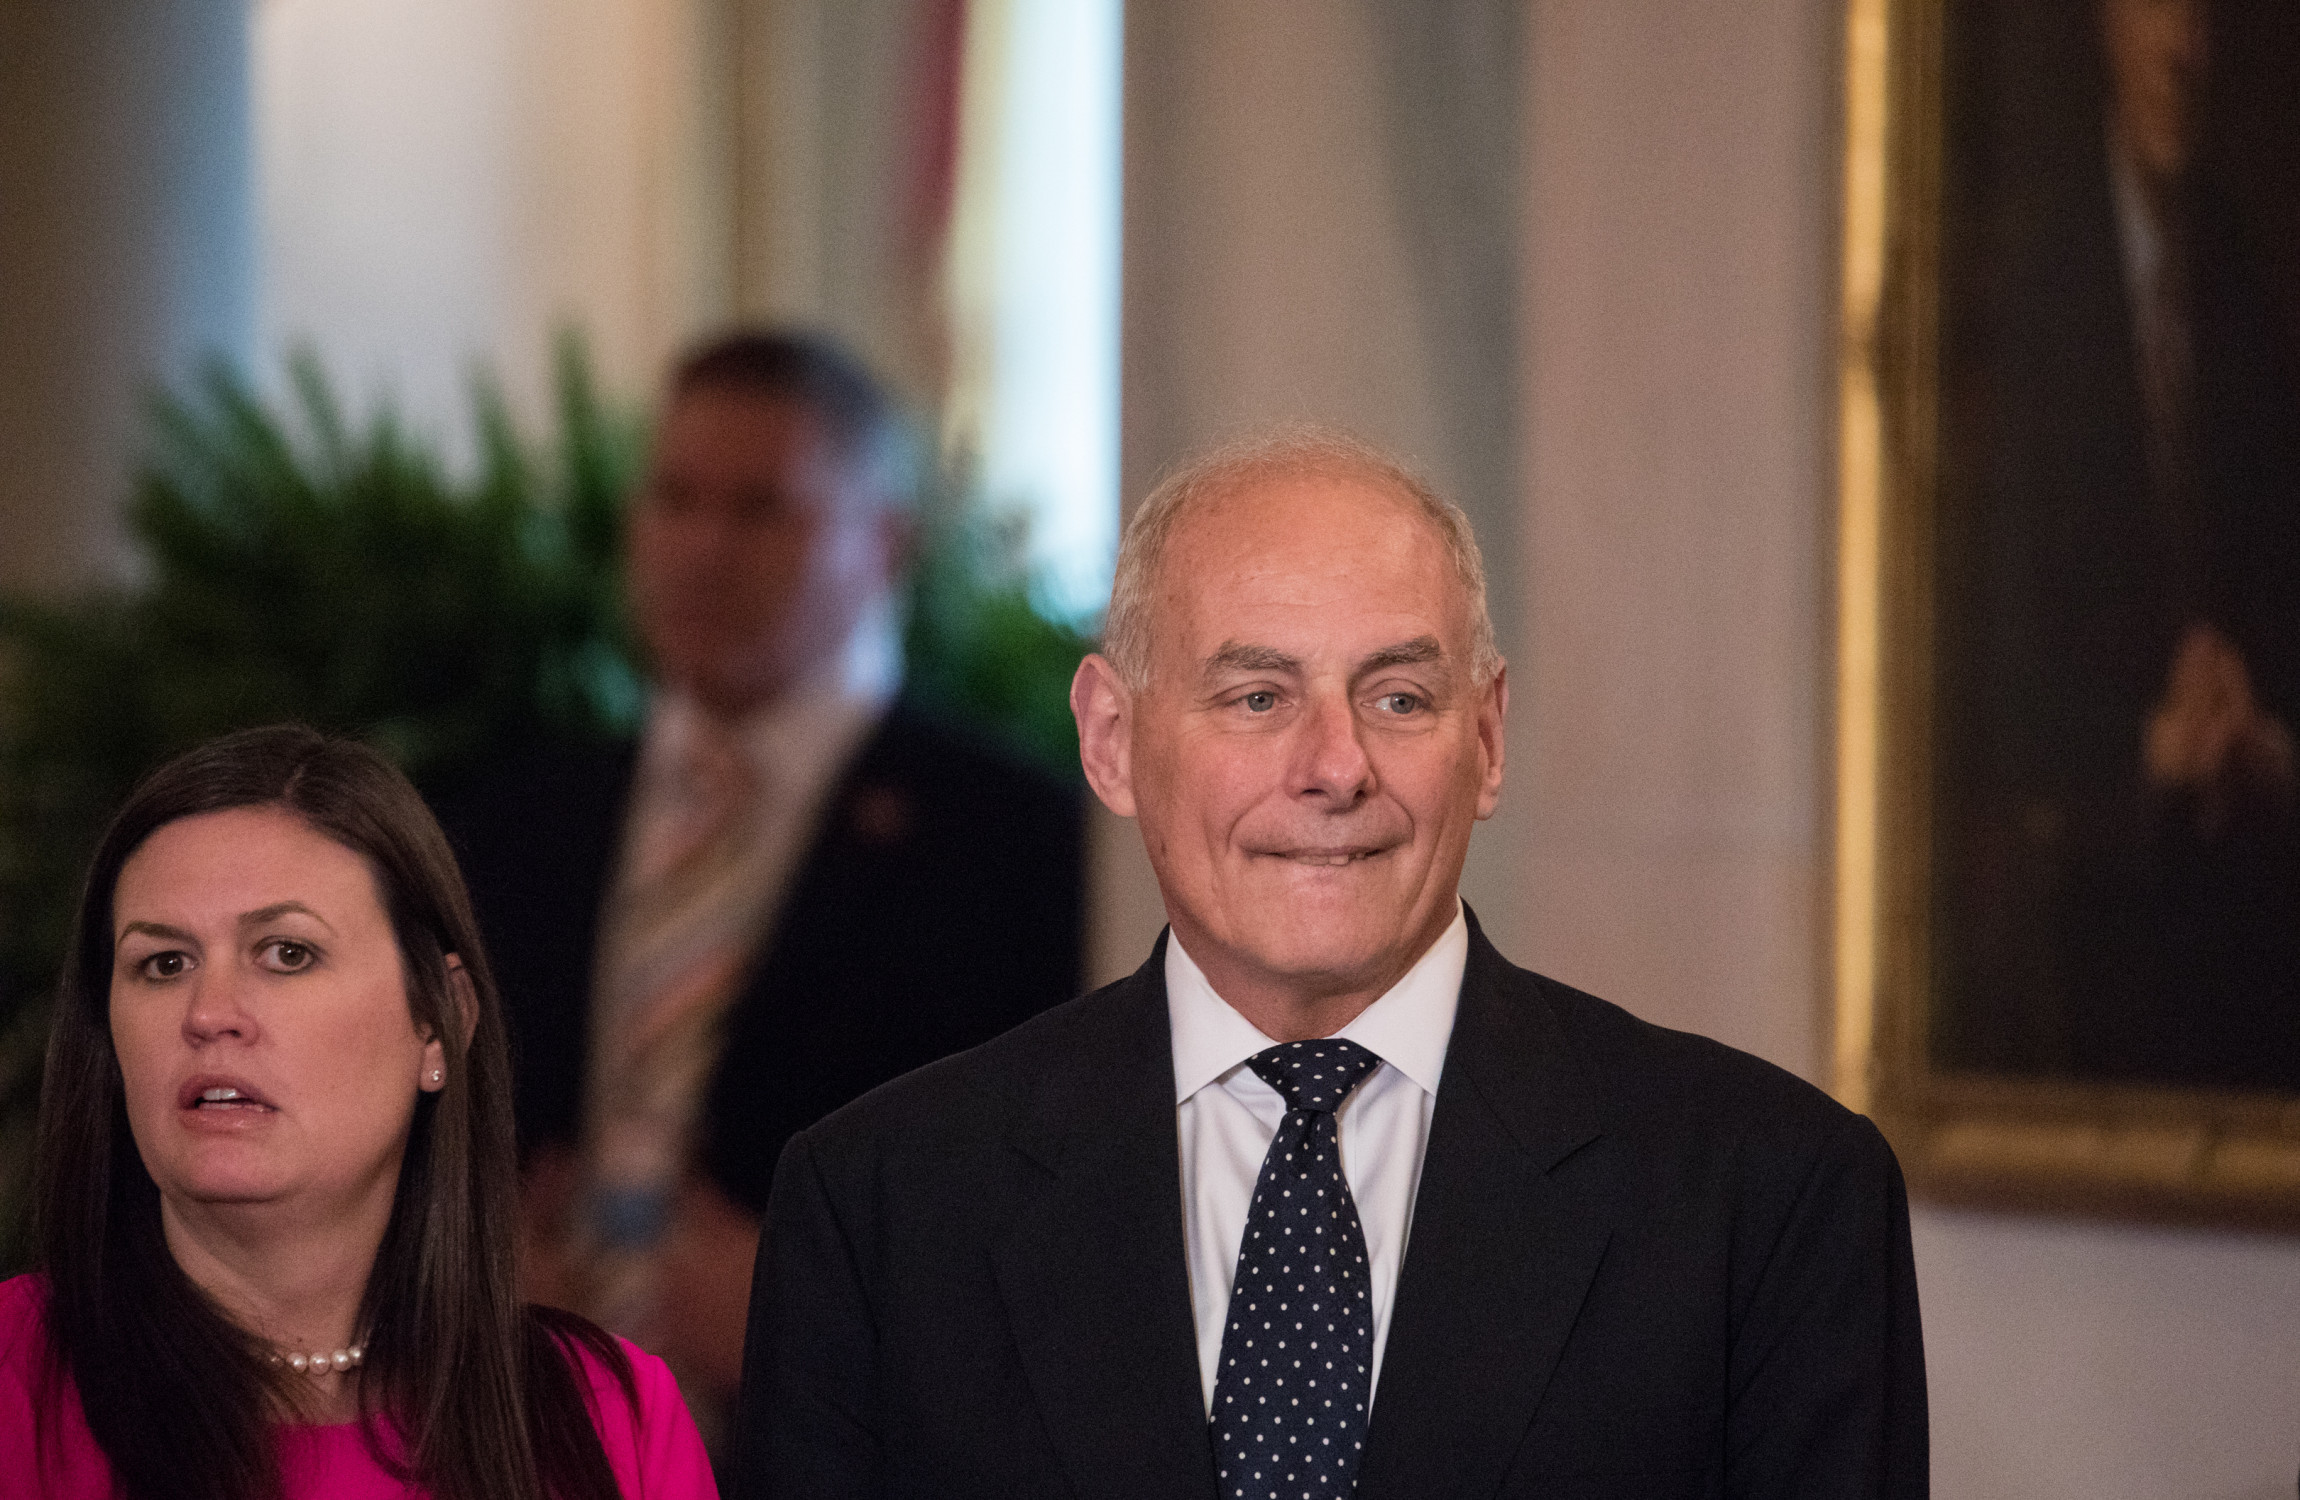 White House chief of staff: 'I'm not quitting today'